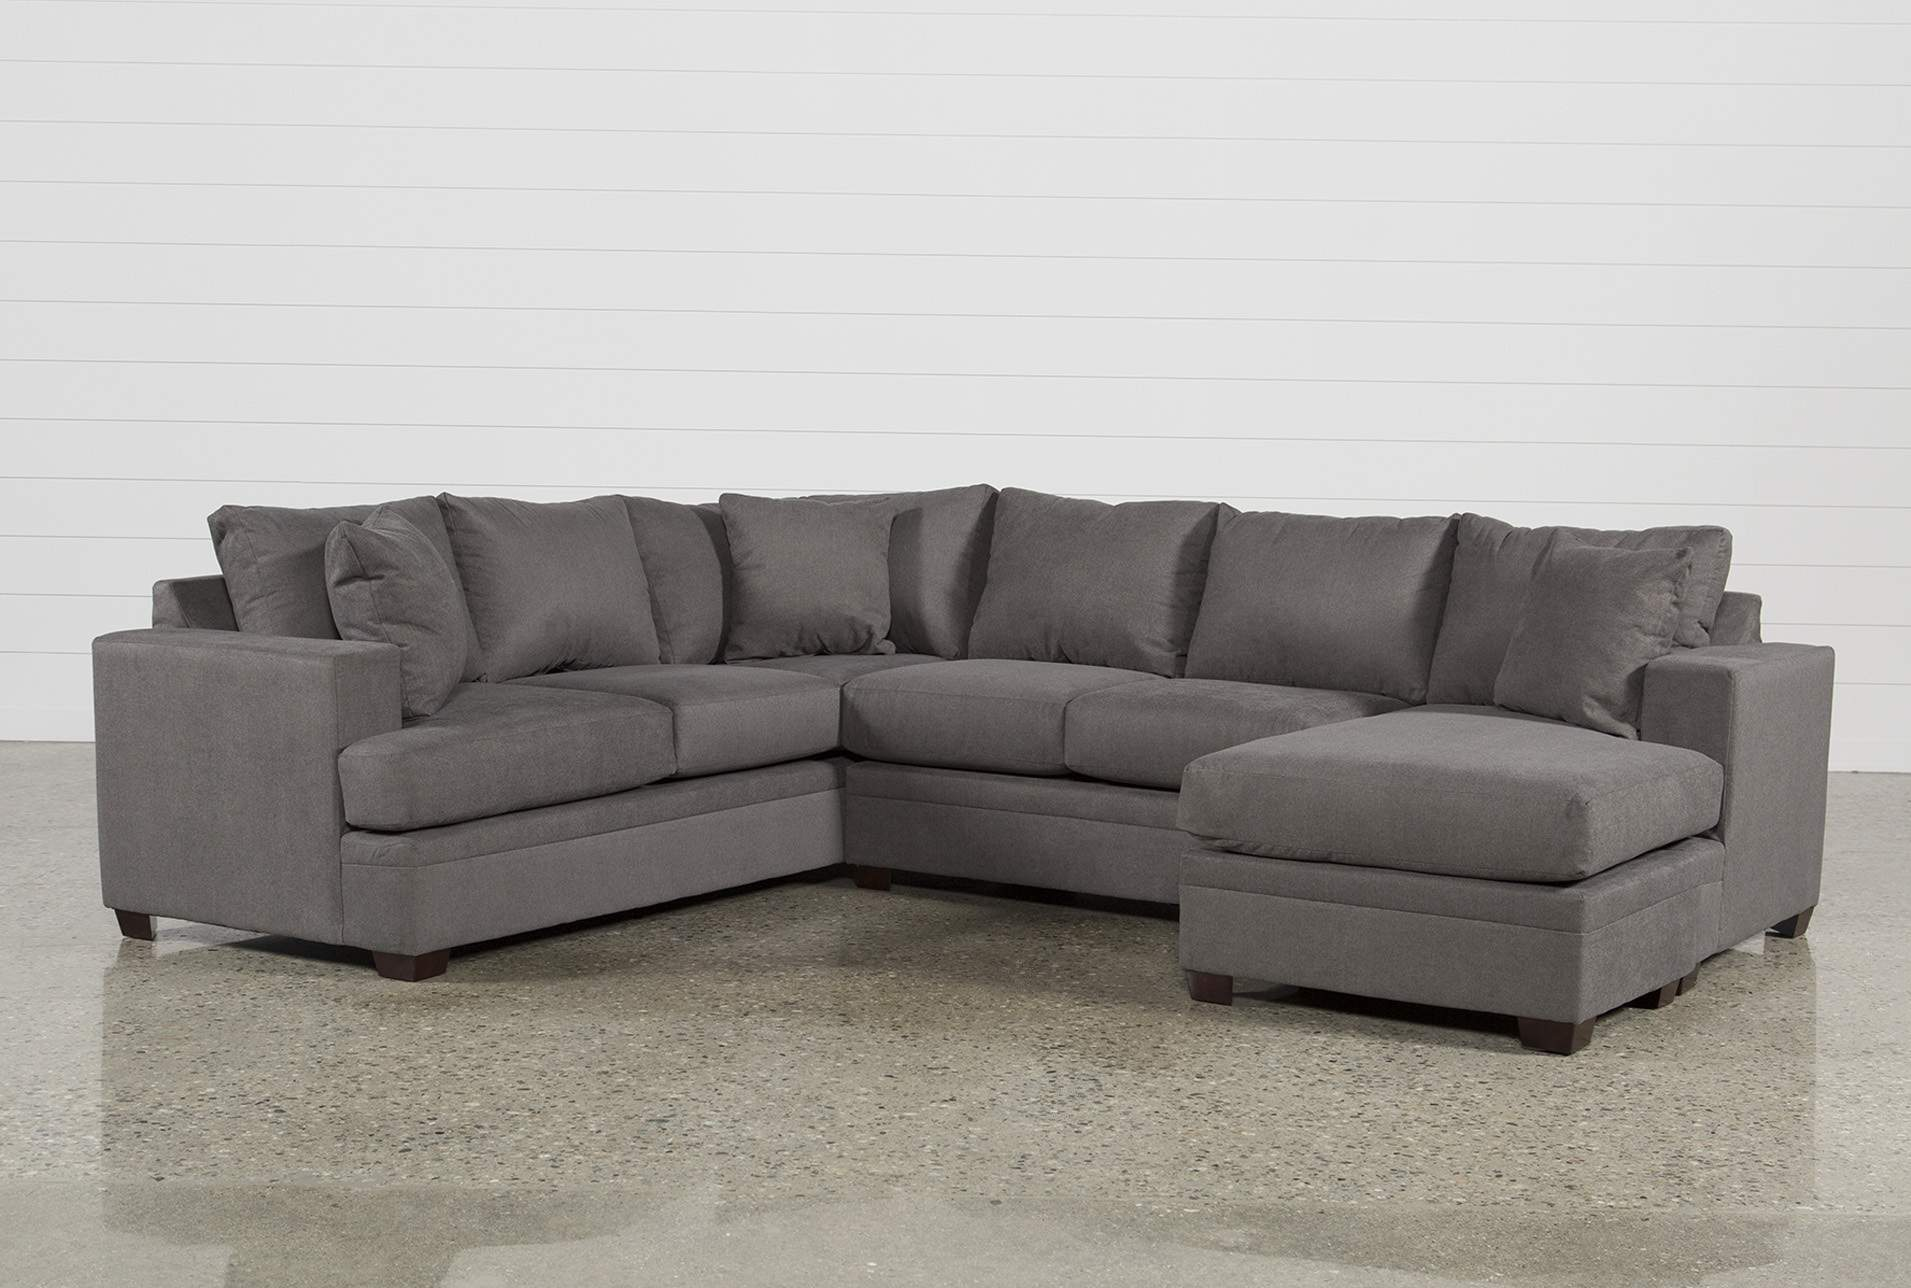 Sofa Sectionals in Trendy Styles Accent   Your Living Room